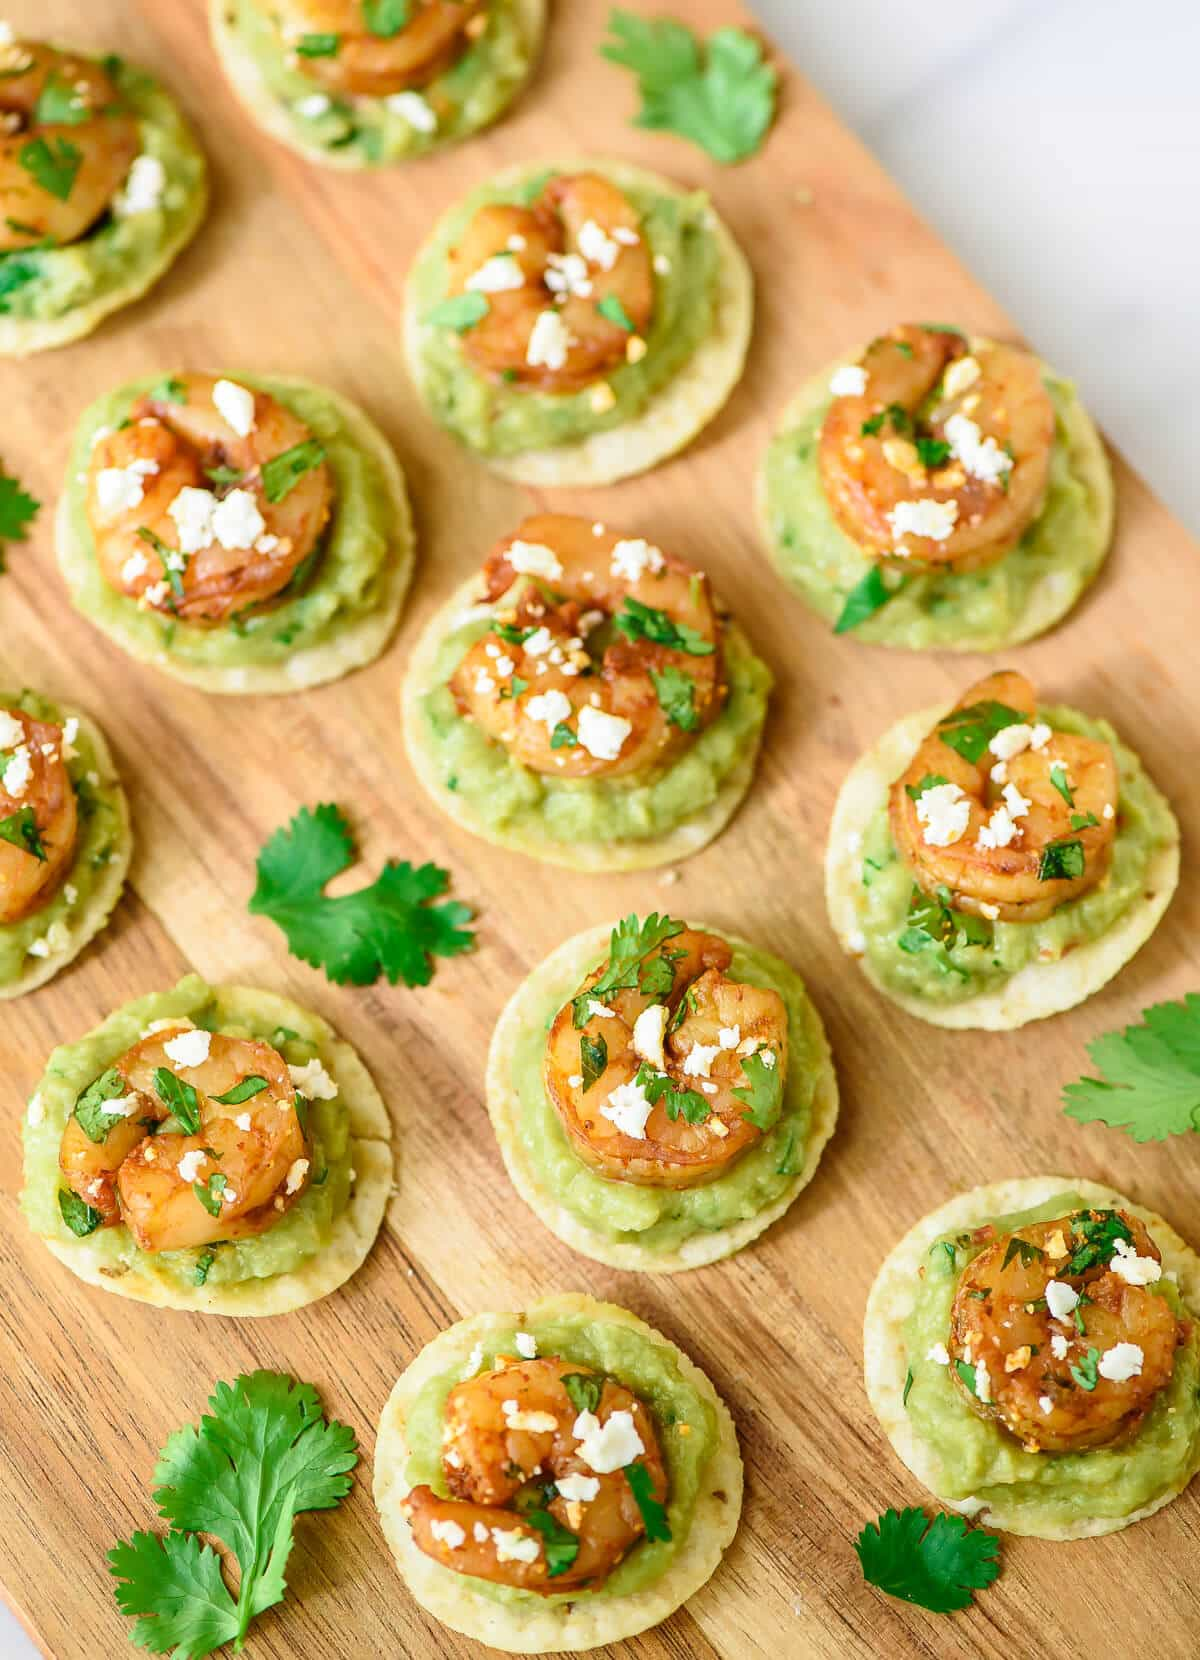 Spicy Shrimp Guacamole Bites. Guac on top of tortilla chips with spicy shrimp. A fast and easy appetizer recipe that is so addictive!